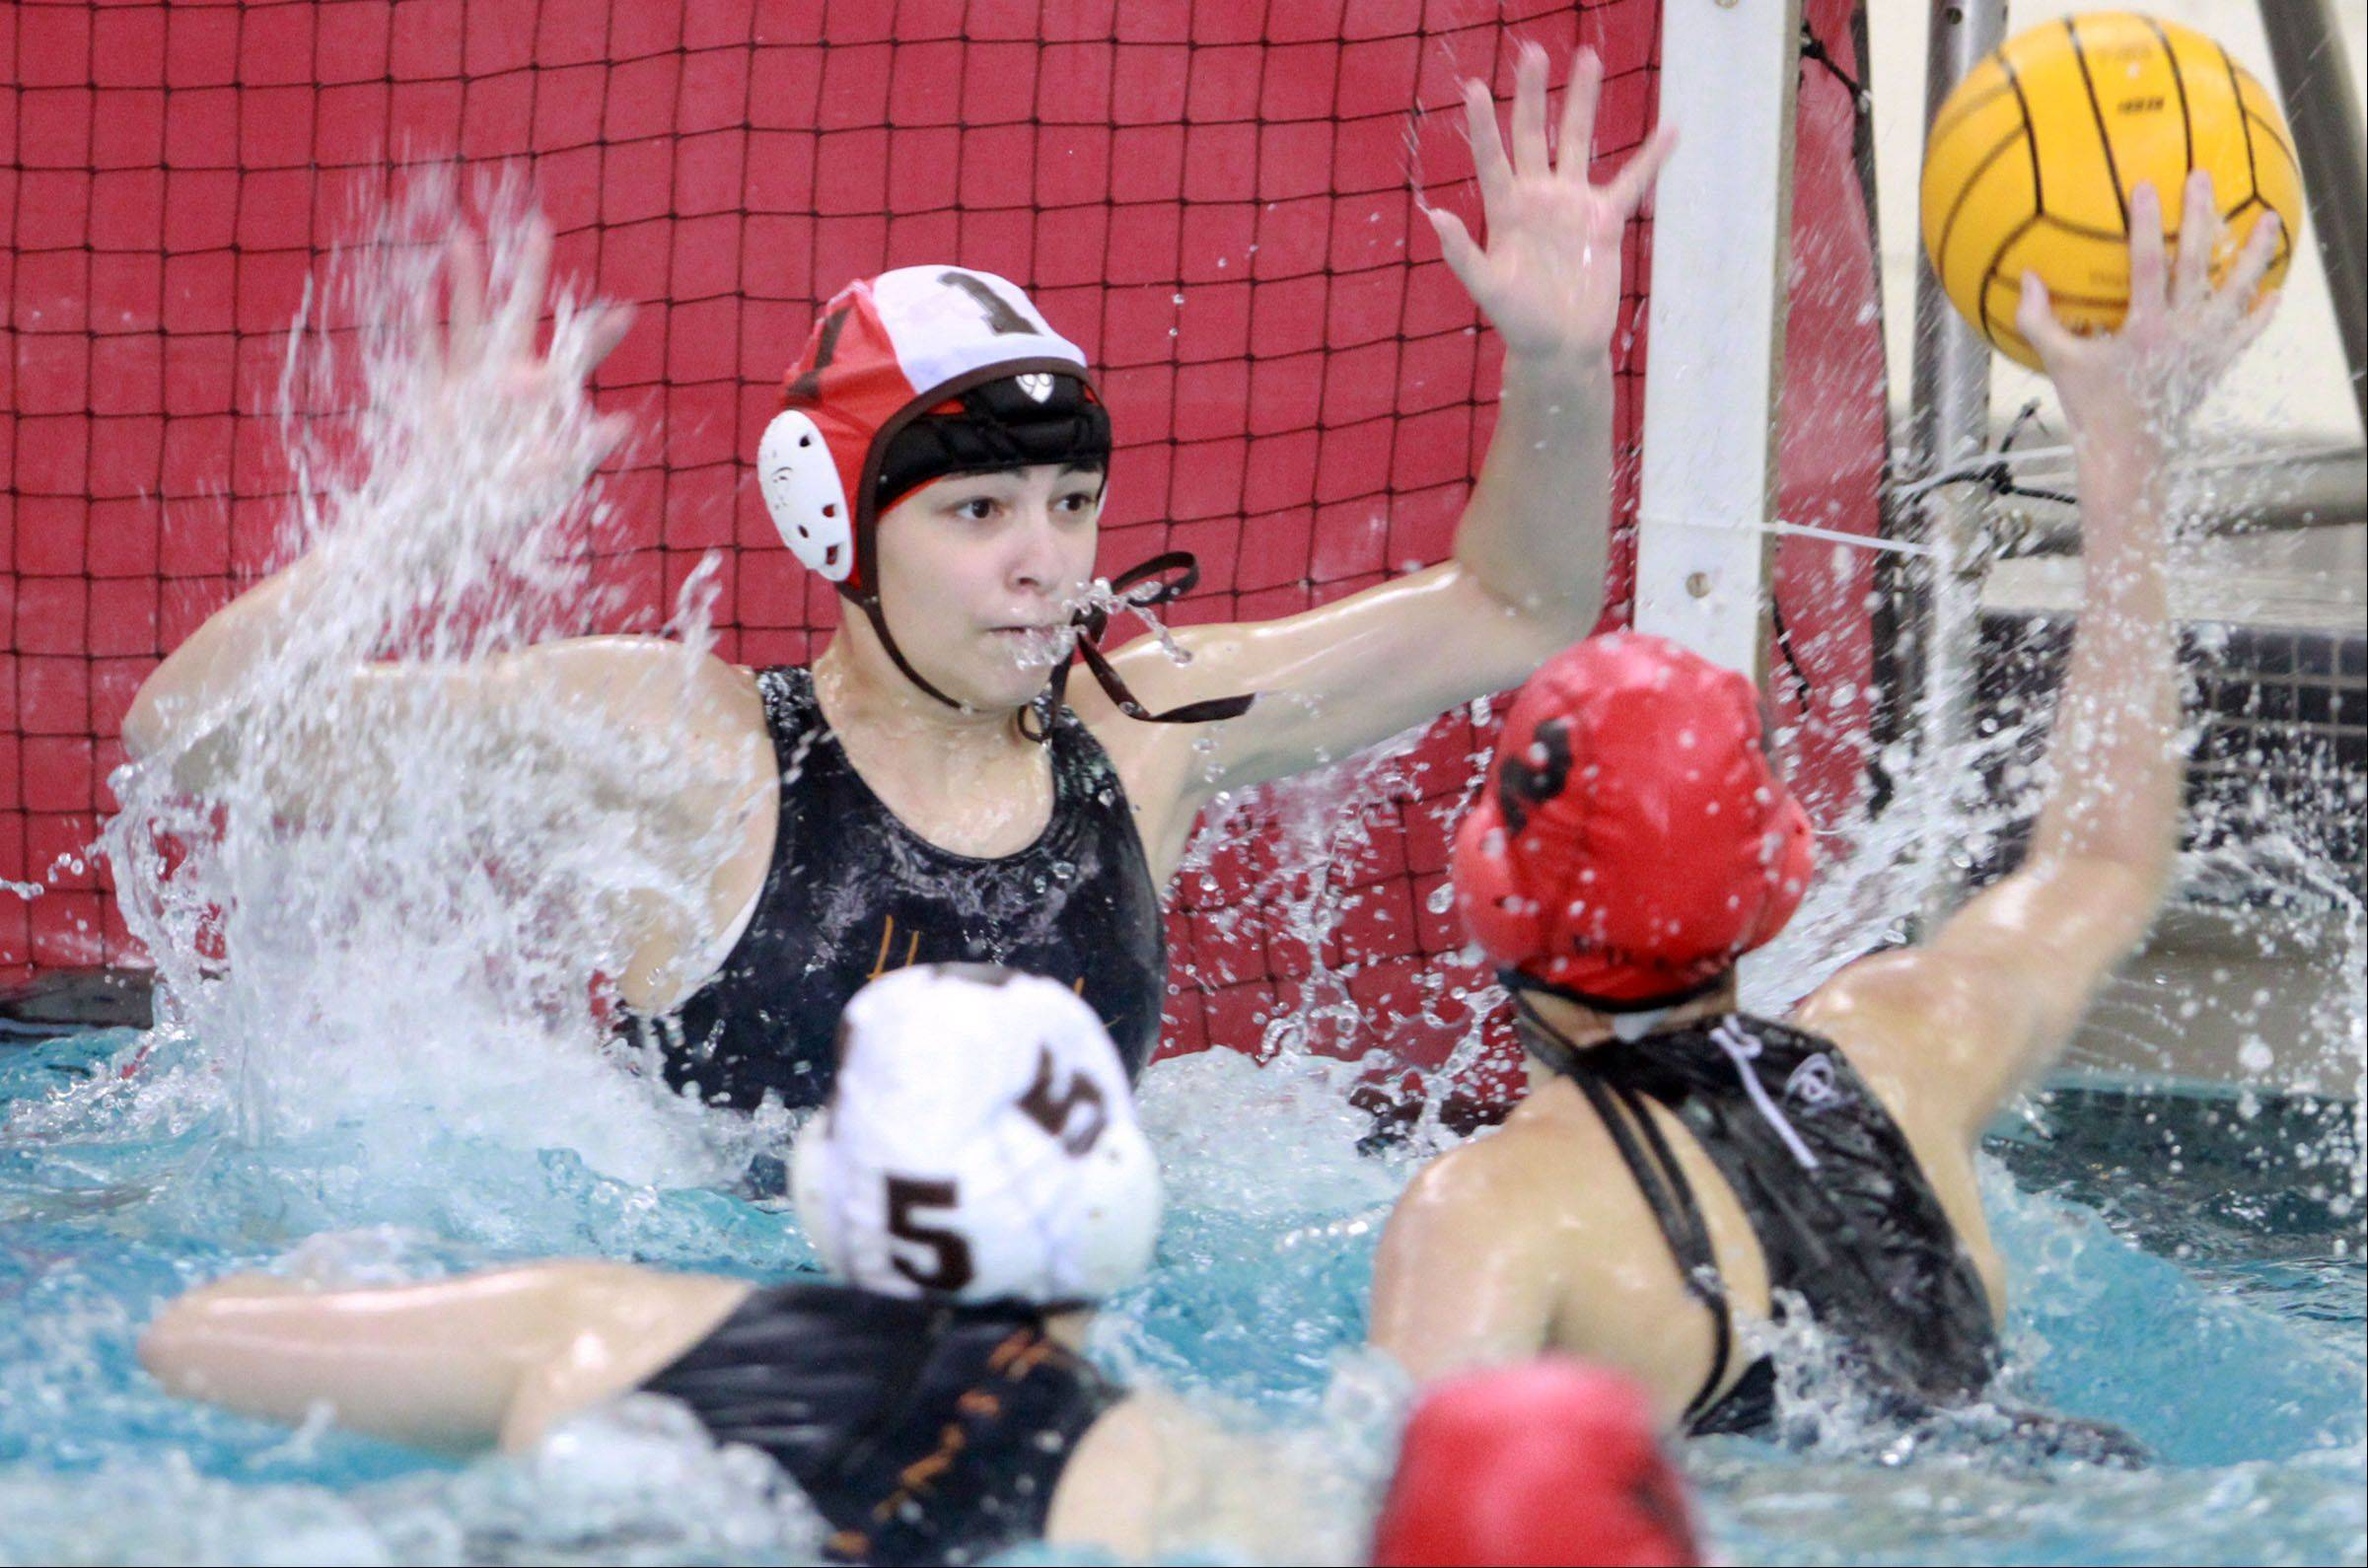 Barrington's Lisa Danhauer scores against Hersey goalie Natalie Curtis during the MSL championship game at Barrington on Wednesday.